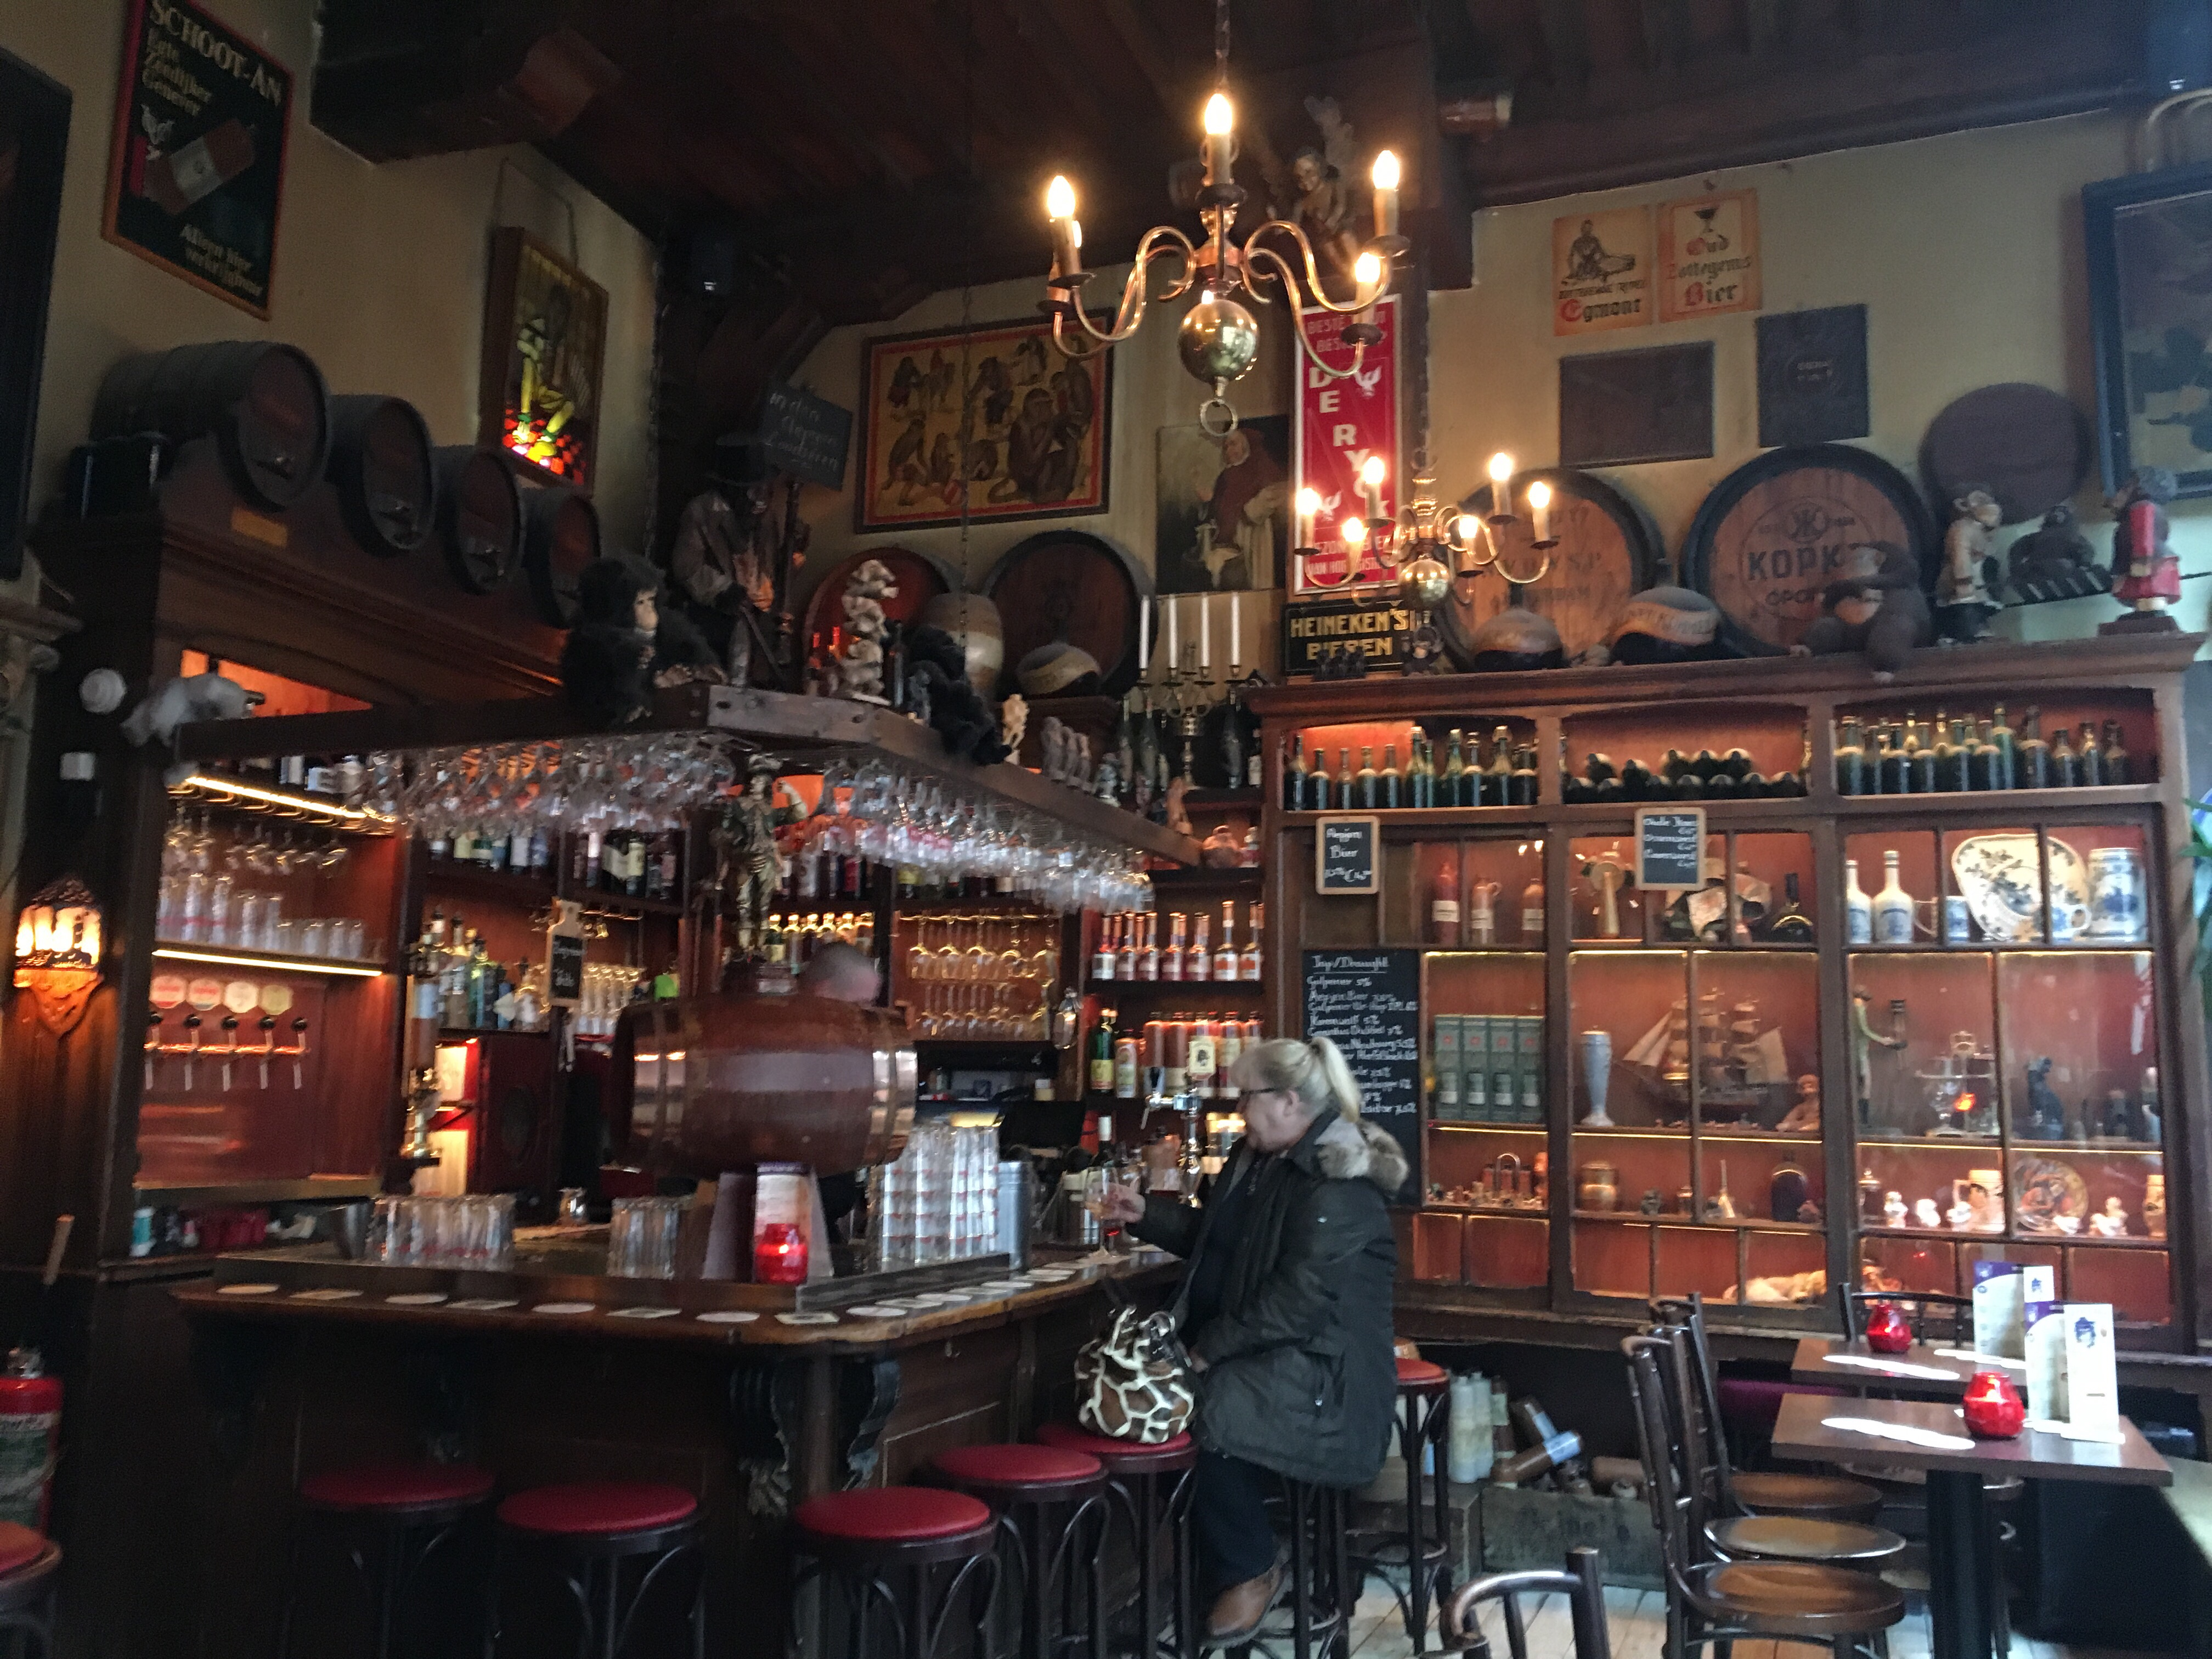 In't Aejep the oldest bar in Amsterdam